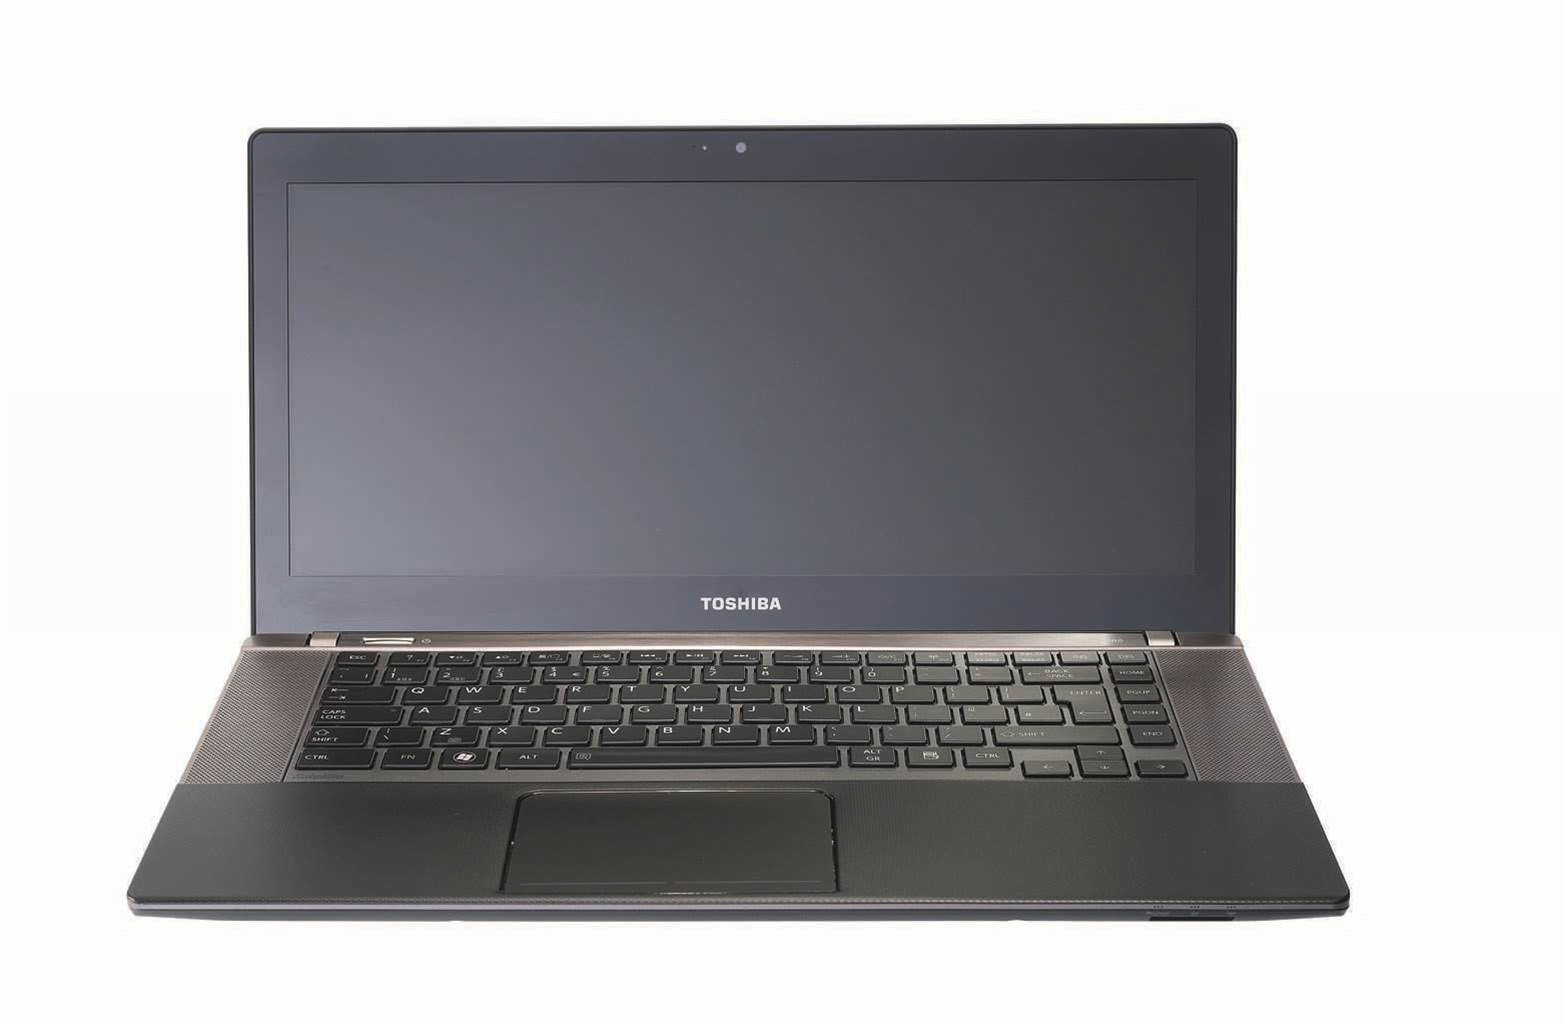 Review: Toshiba Satellite U840W/002